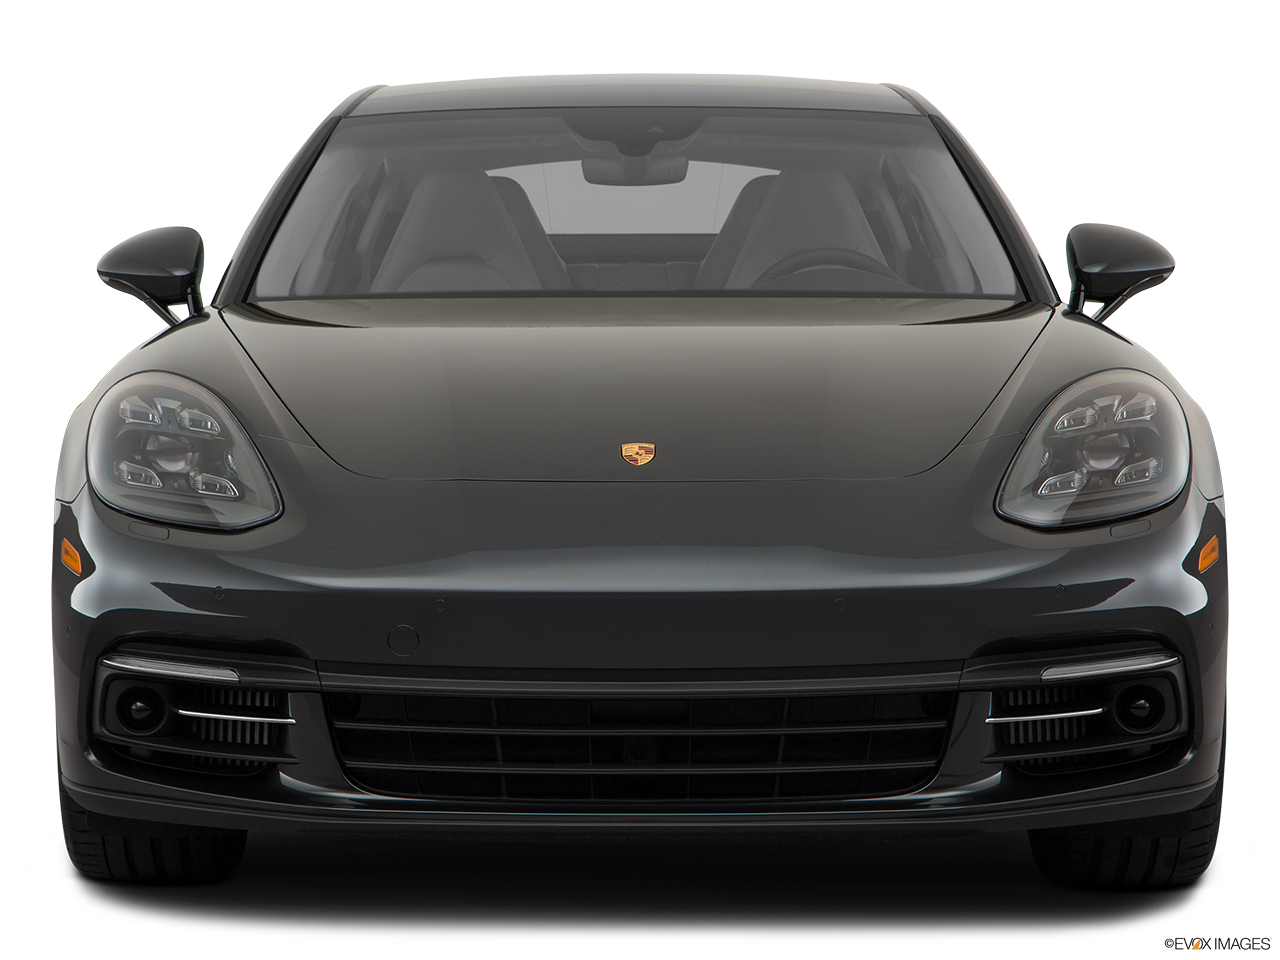 Front view of the Porsche Panamera Turbo S E-Hybrid